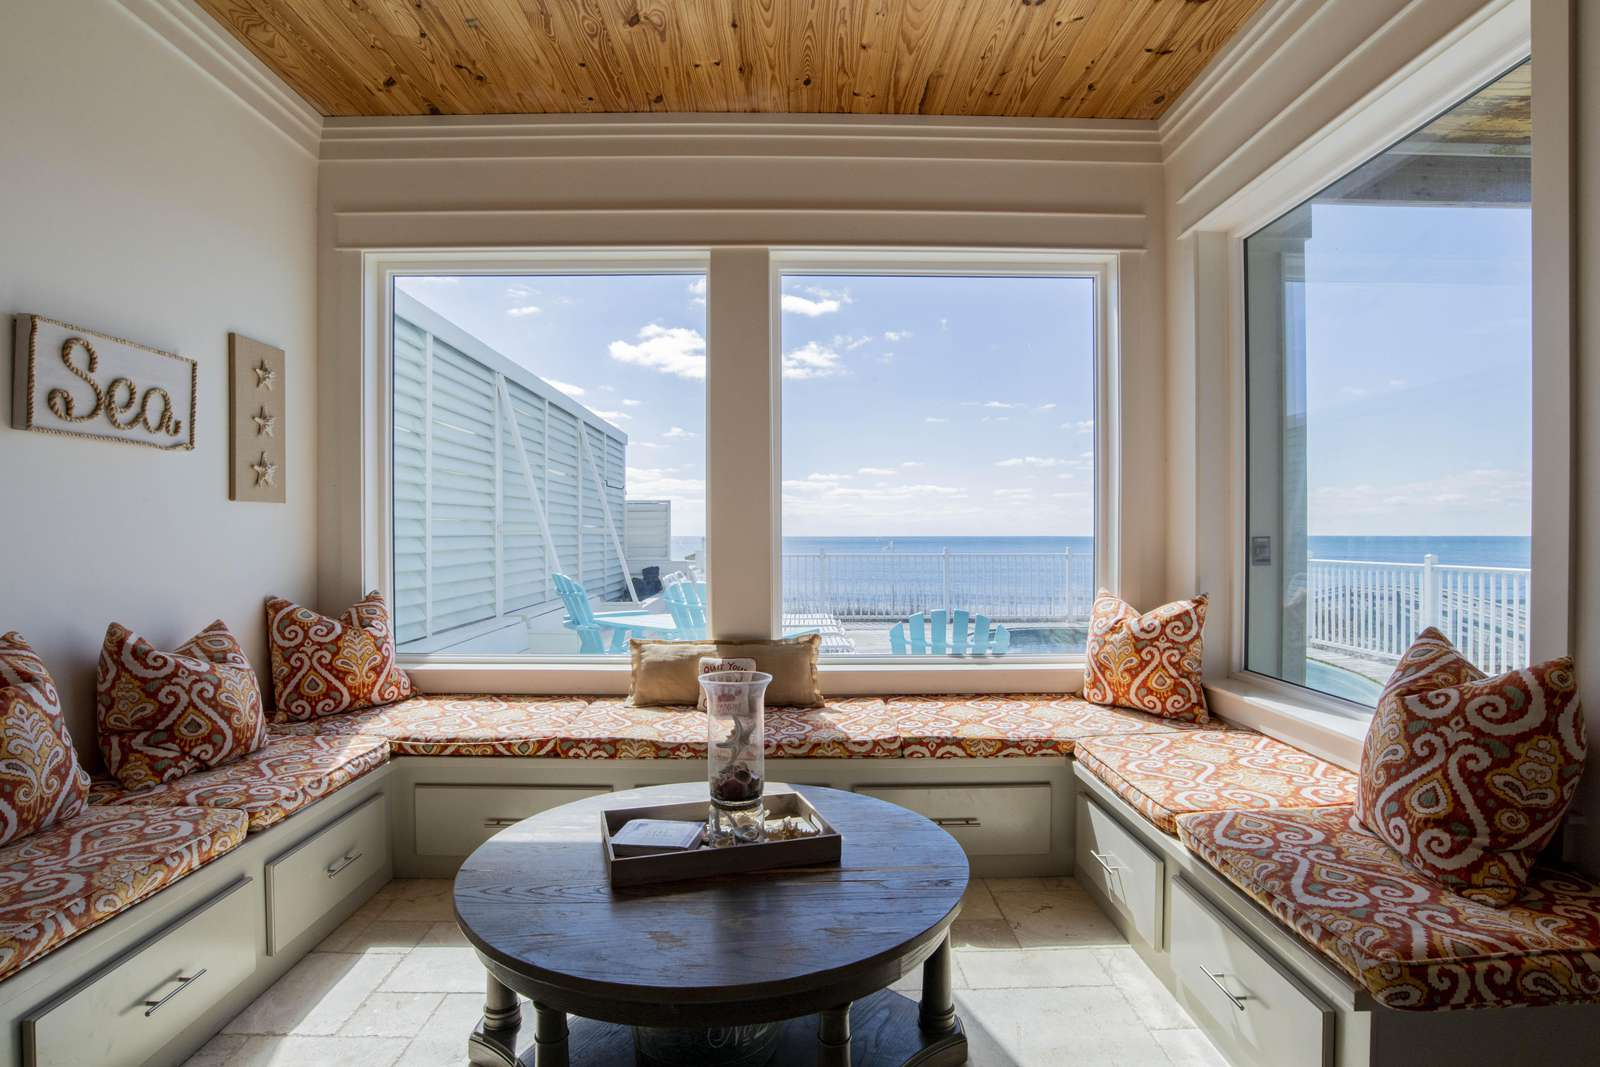 Sitting nook overlooking pool and Gulf.